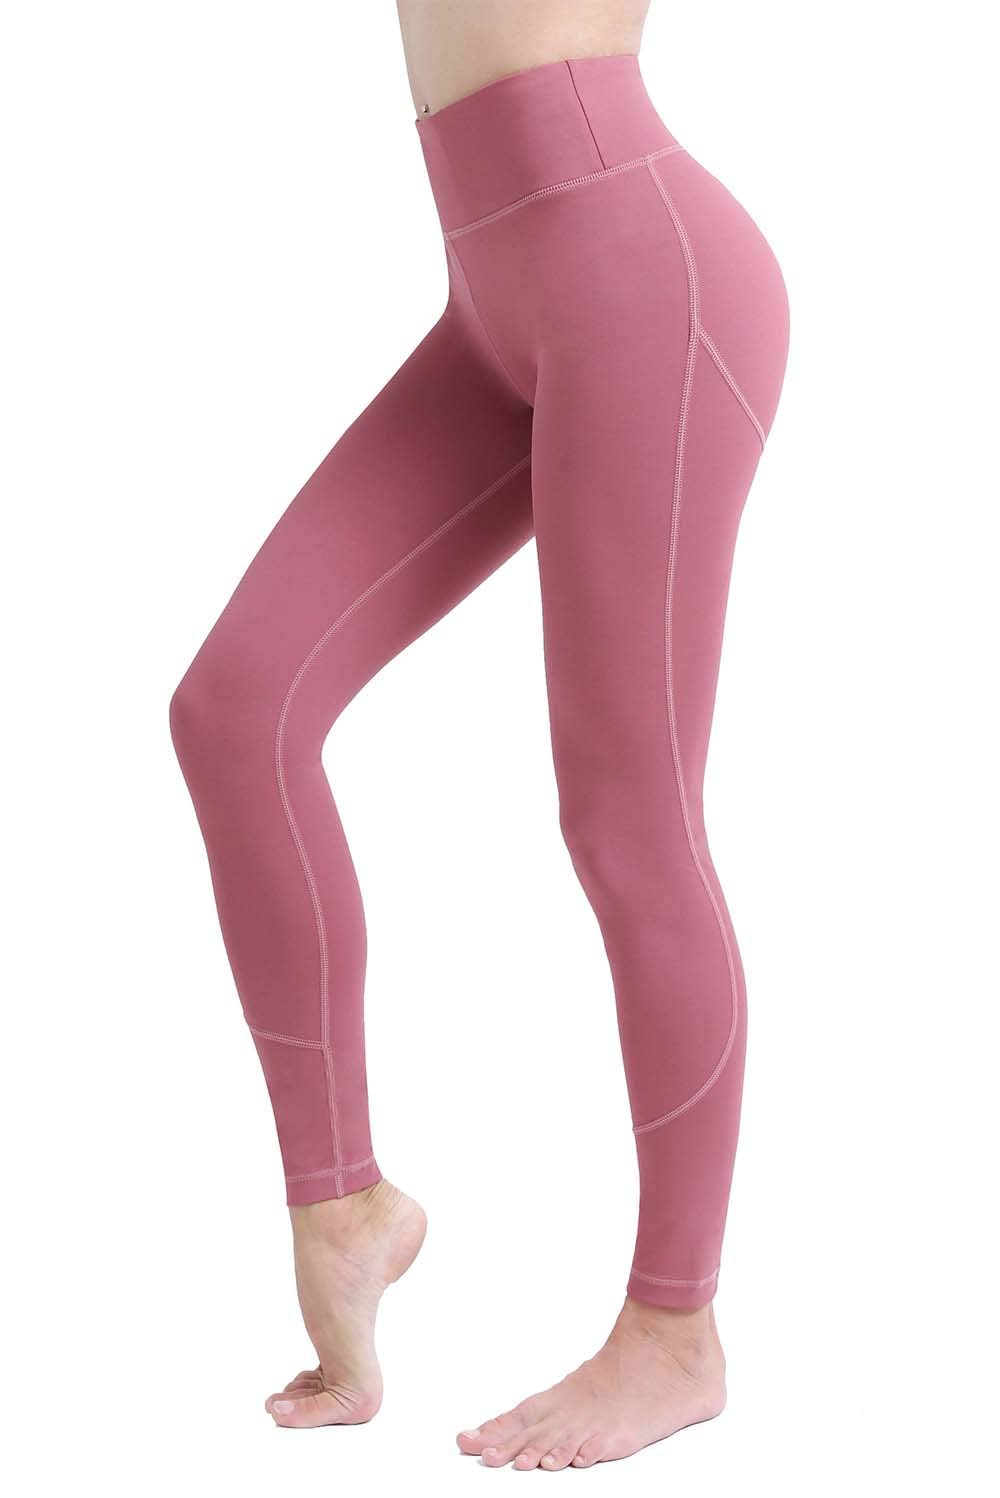 Soft High Waisted Yoga Leggings for Women,Spanx Tummy Control Leggings with Pockets,Athletic Running Workout Leggings Sports Gym